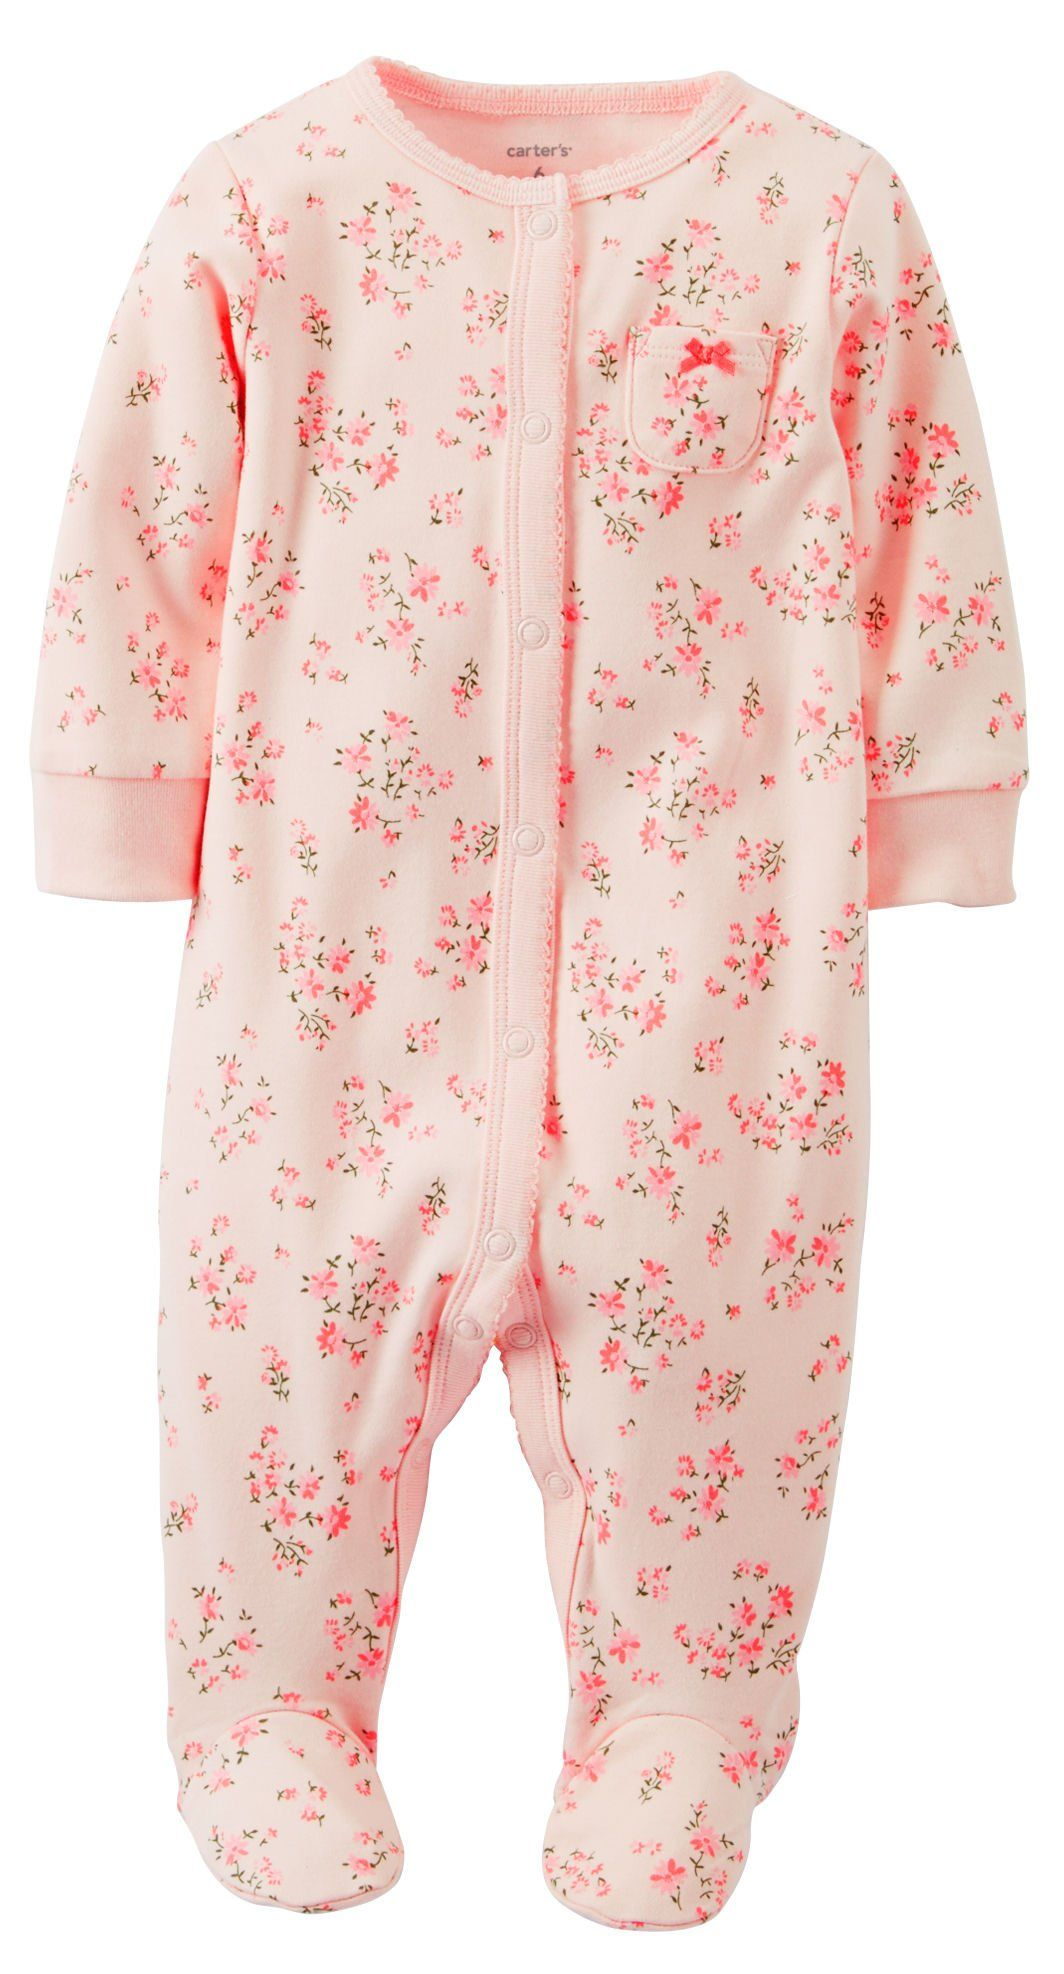 75a1ebe2c  15- Carter s Baby Girls  Print Terry Footie (Baby) - Pink - 3 or 6 ...